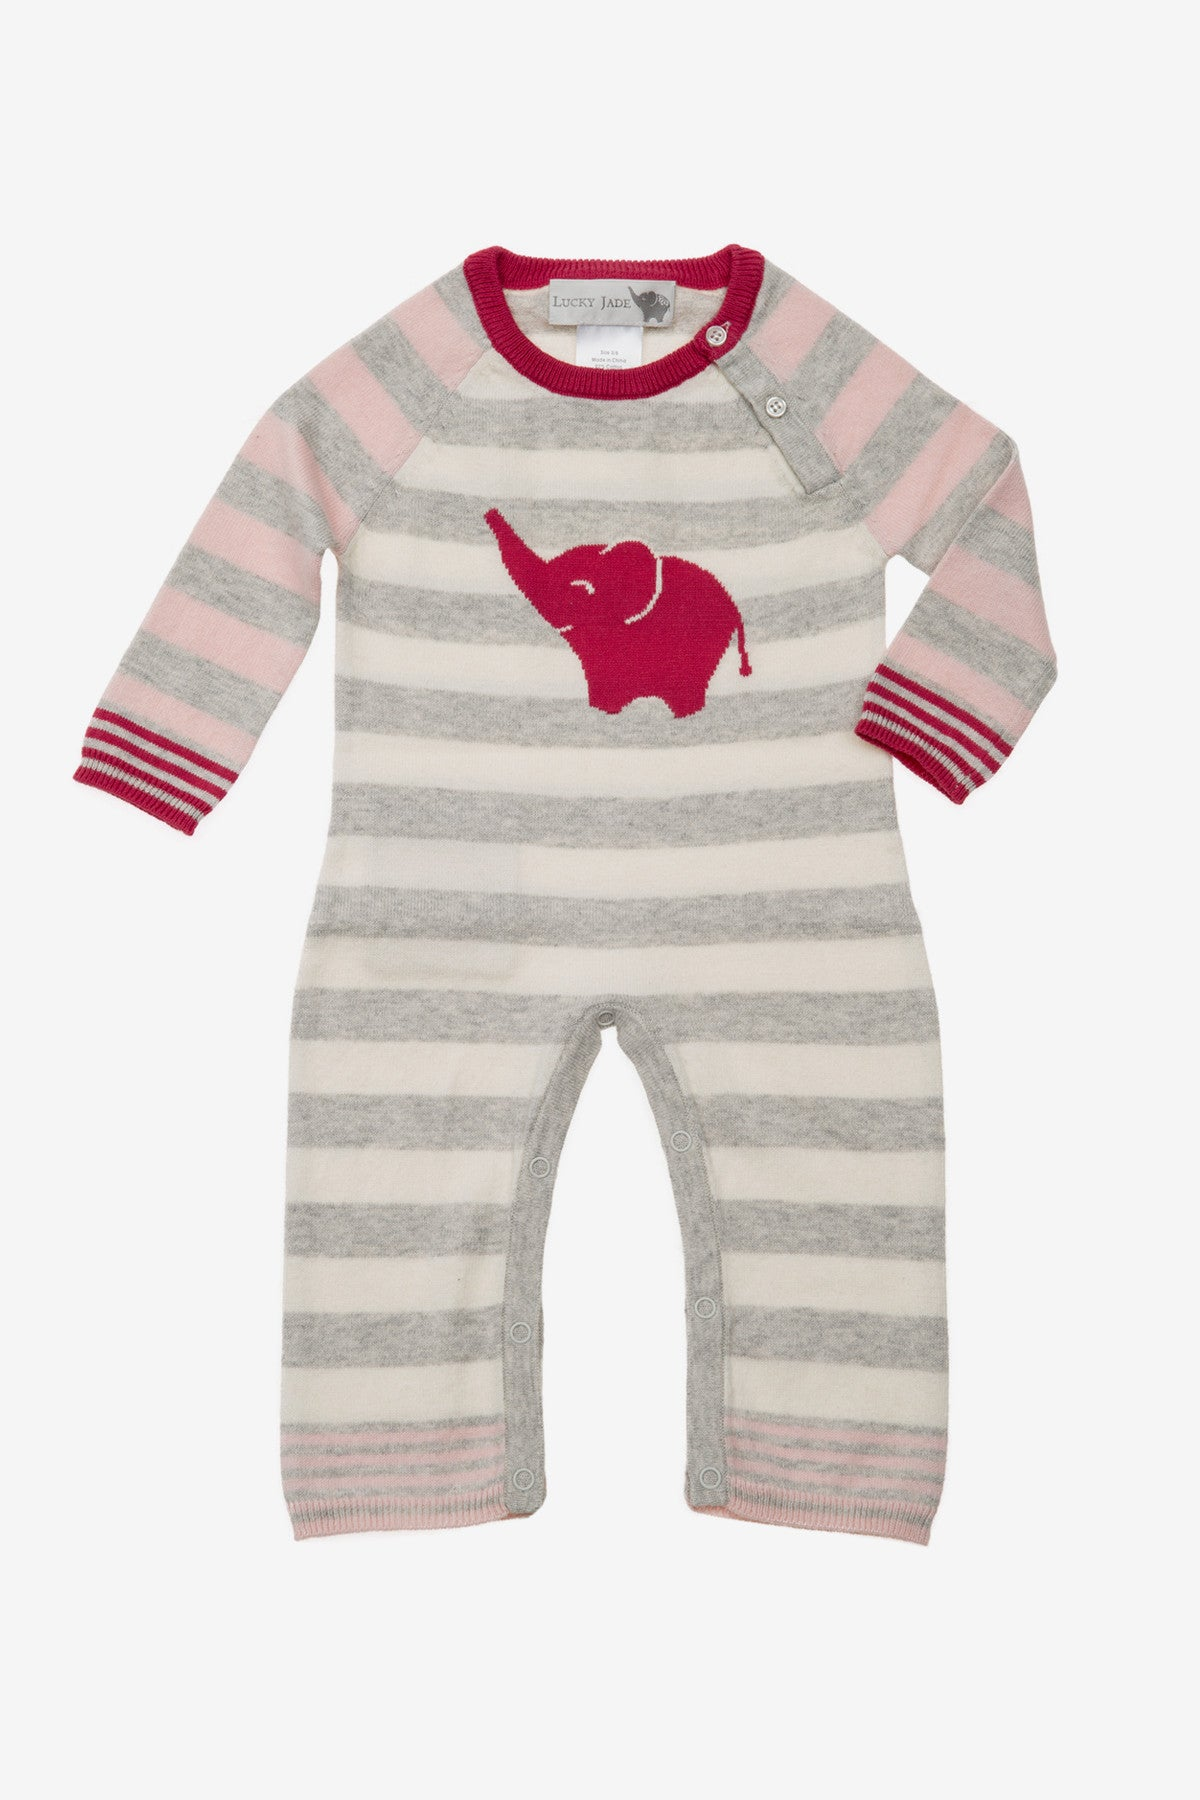 """Baby Clothes Collection at Mini Ruby Tagged """"0 6M"""""""